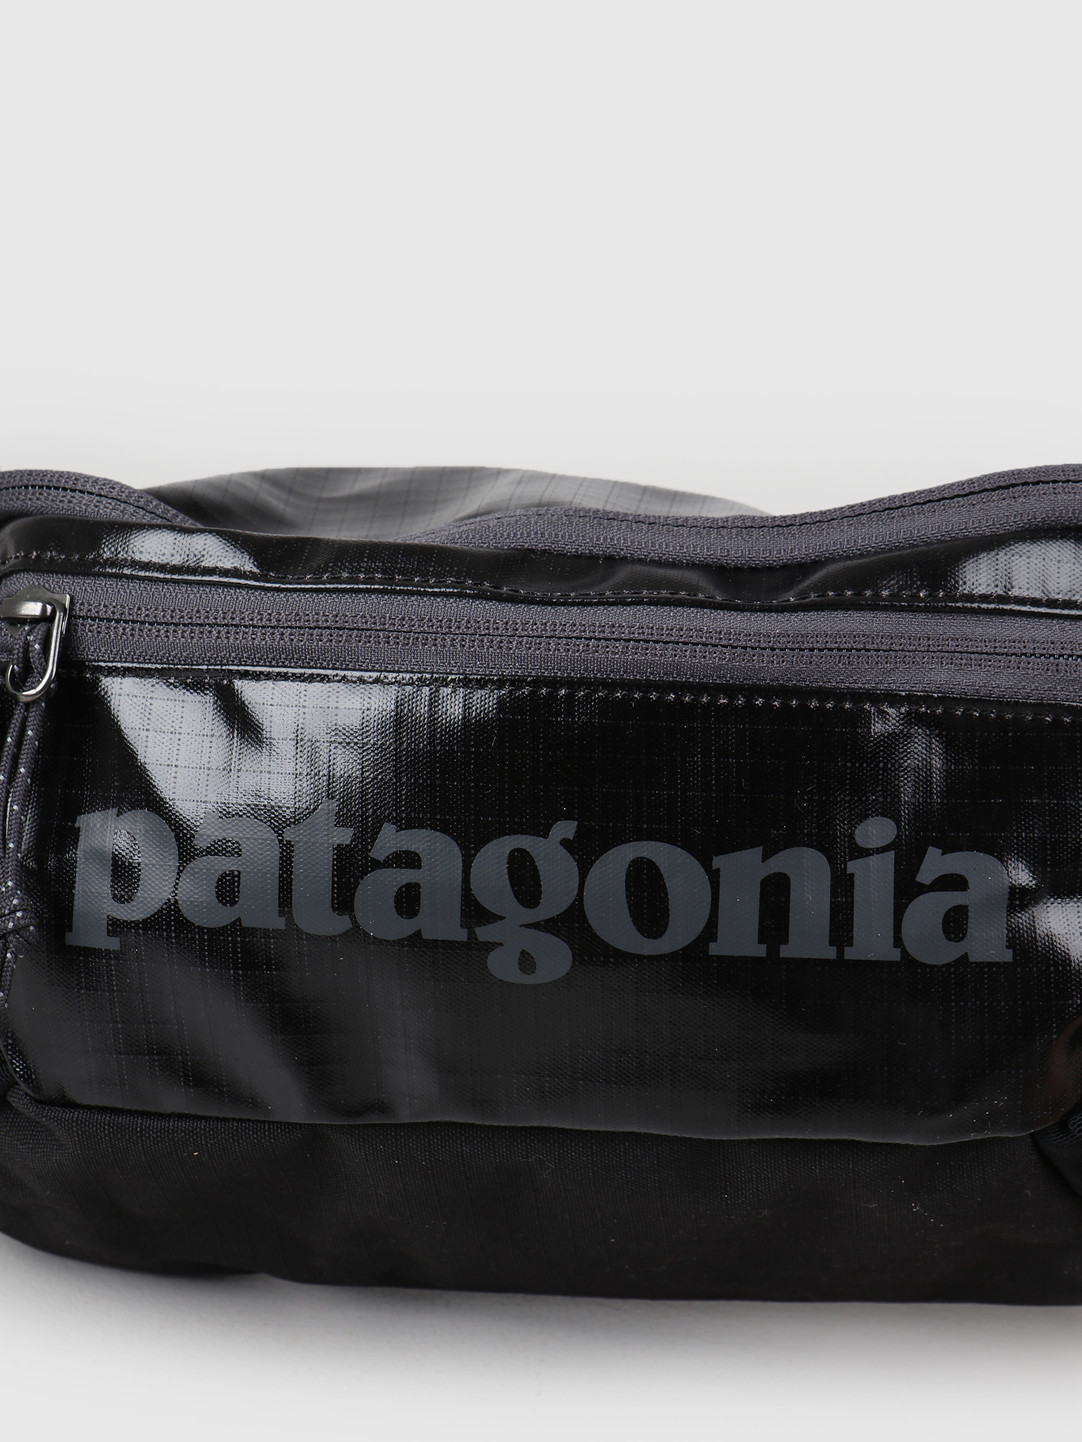 Patagonia Patagonia Black Hole Waist Pack Black 49280